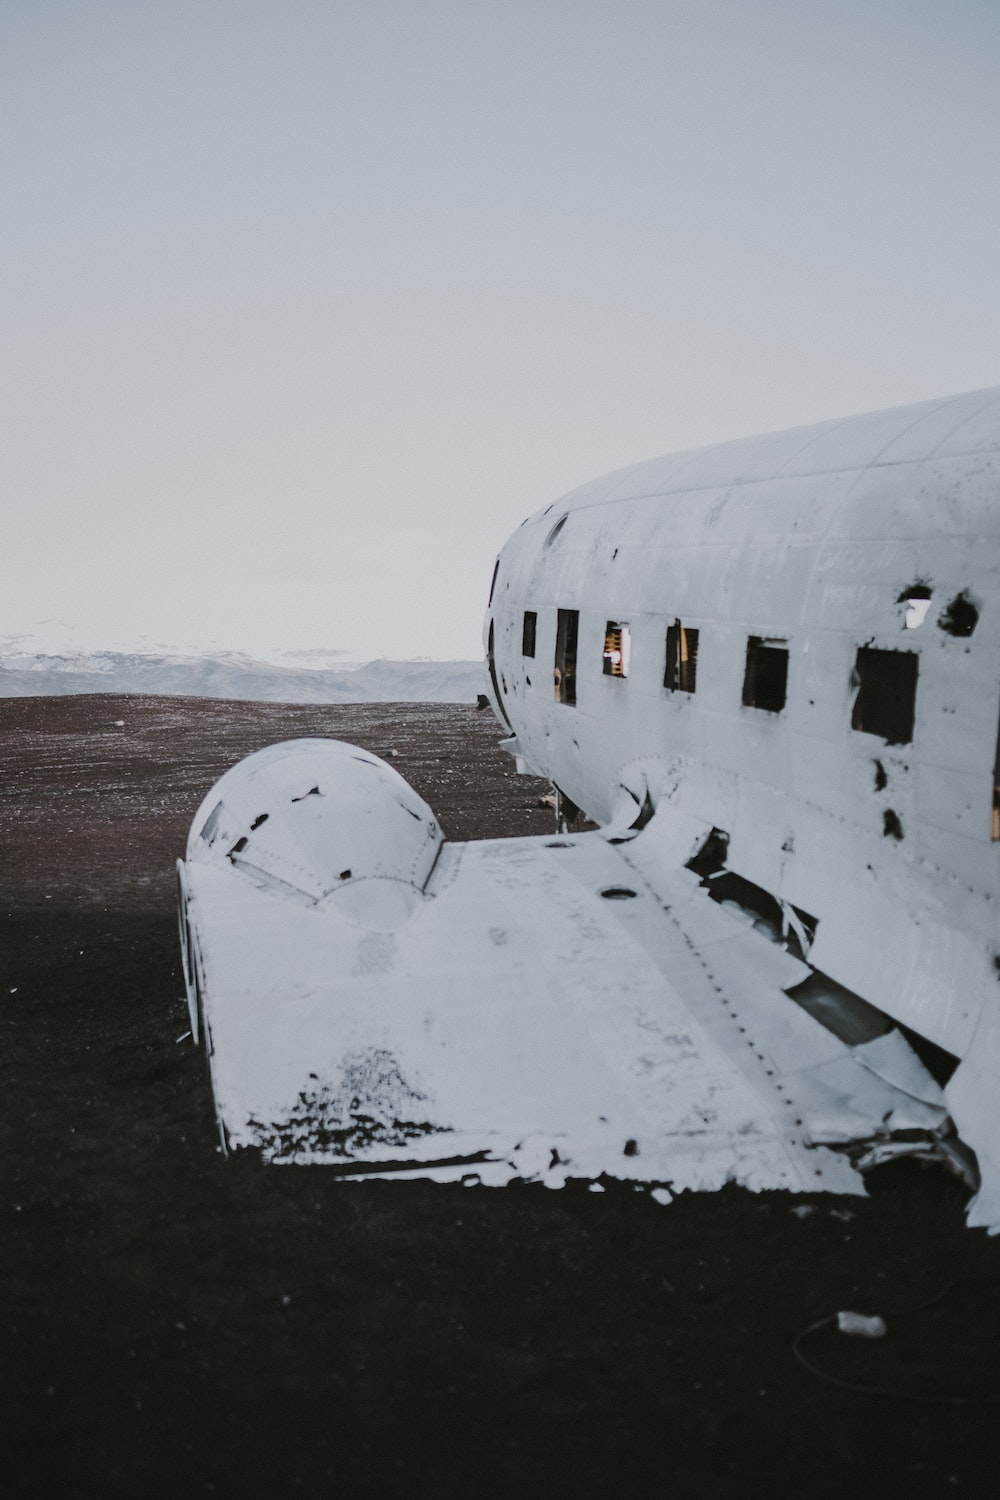 destroyed plane on field